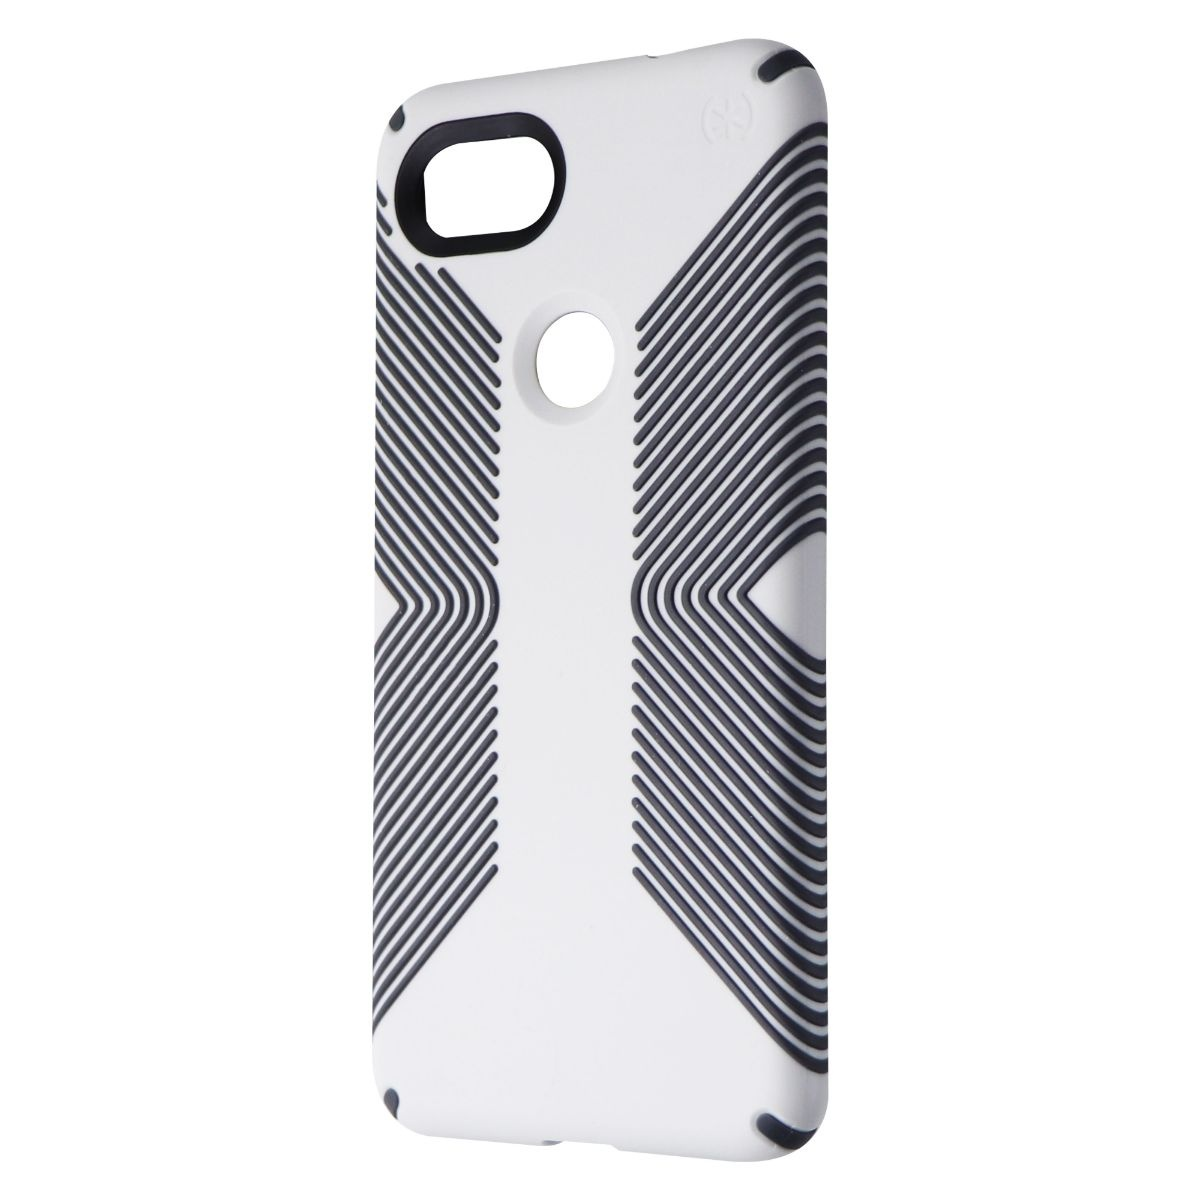 Speck Presidio Grip Case for Google Pixel 3a - Marble Gray/Anthracite Gray